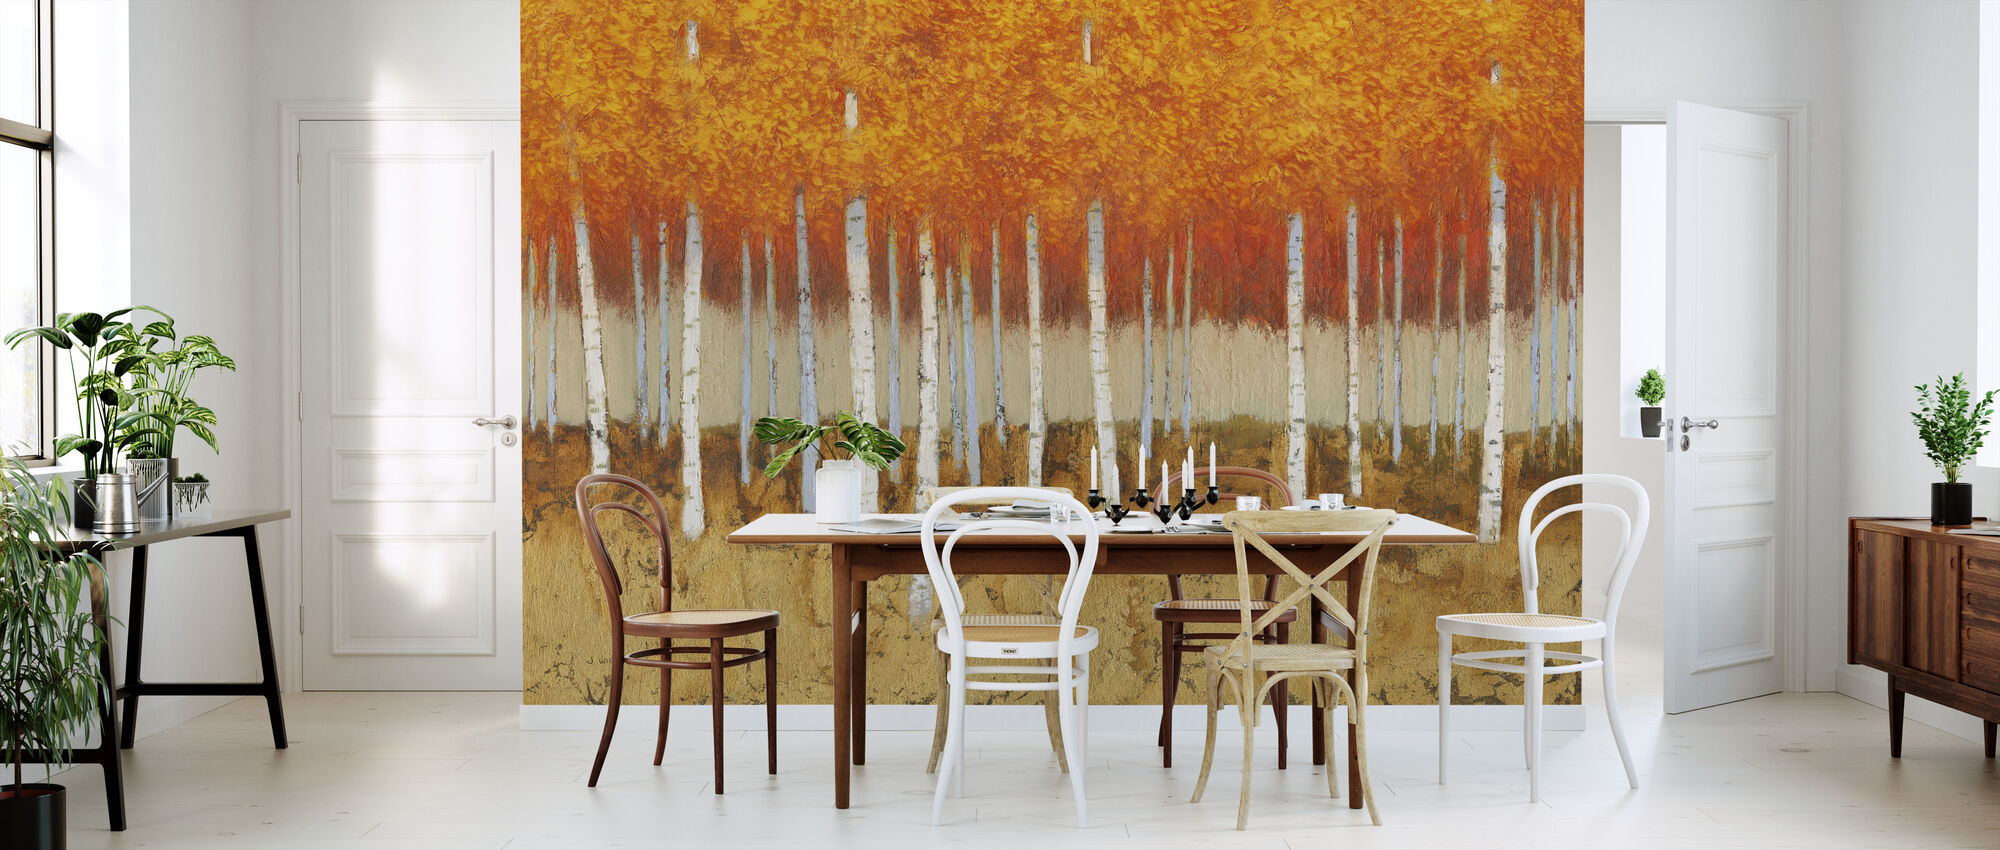 Autumn Birches - Wallpaper - Kitchen